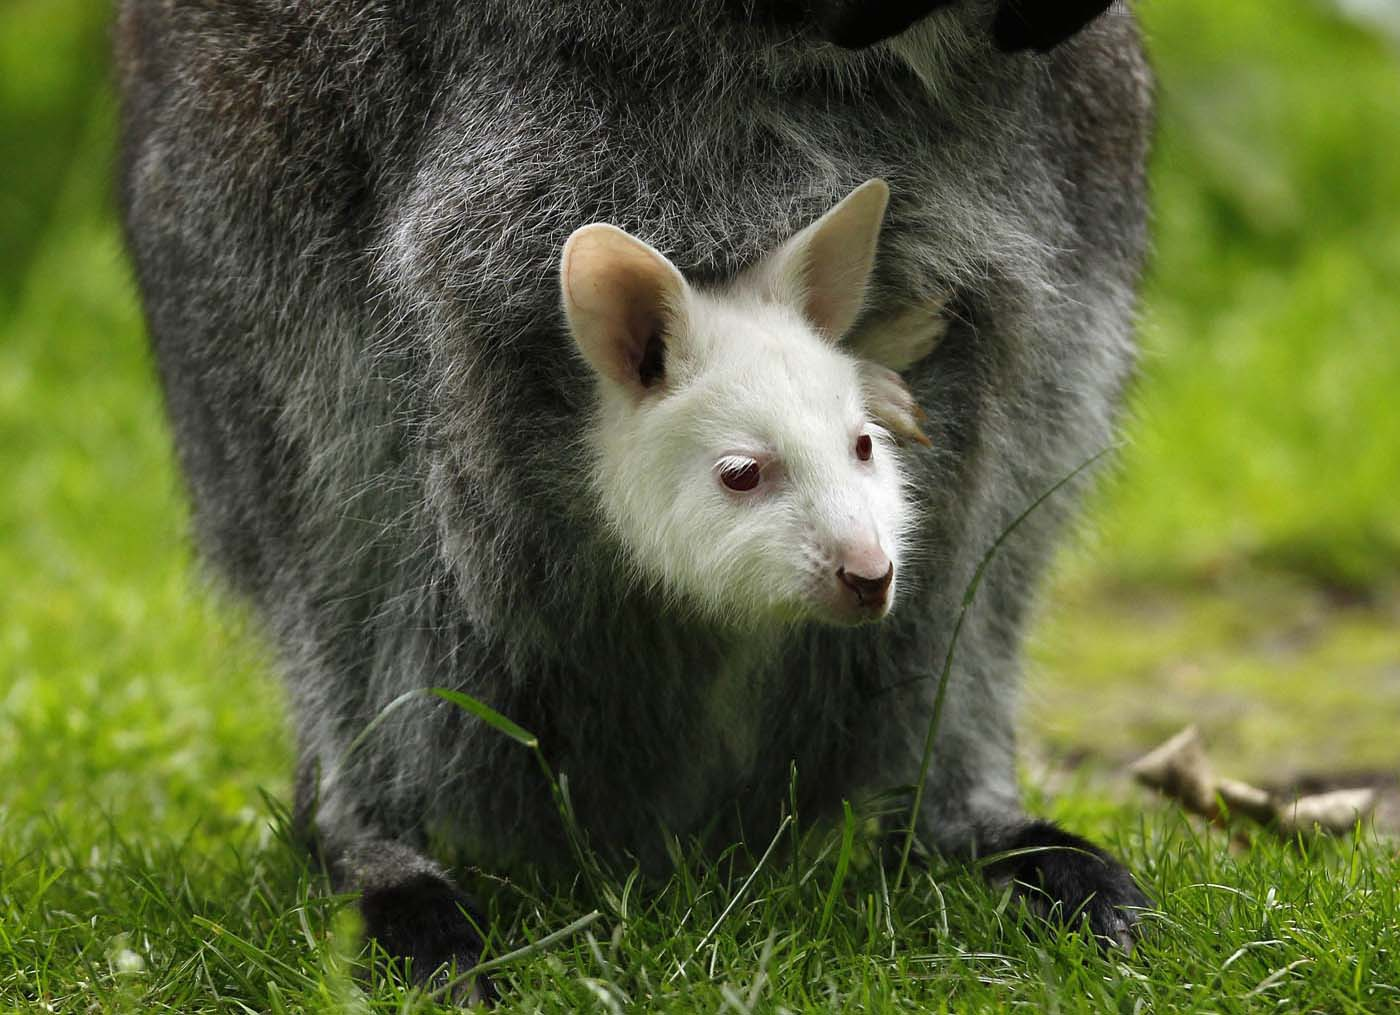 An albino baby Bennett's wallaby is carried by his mother in their enclosure at the zoo in Duisburg June 22, 2012. (Ina Fassbender/Reuters)